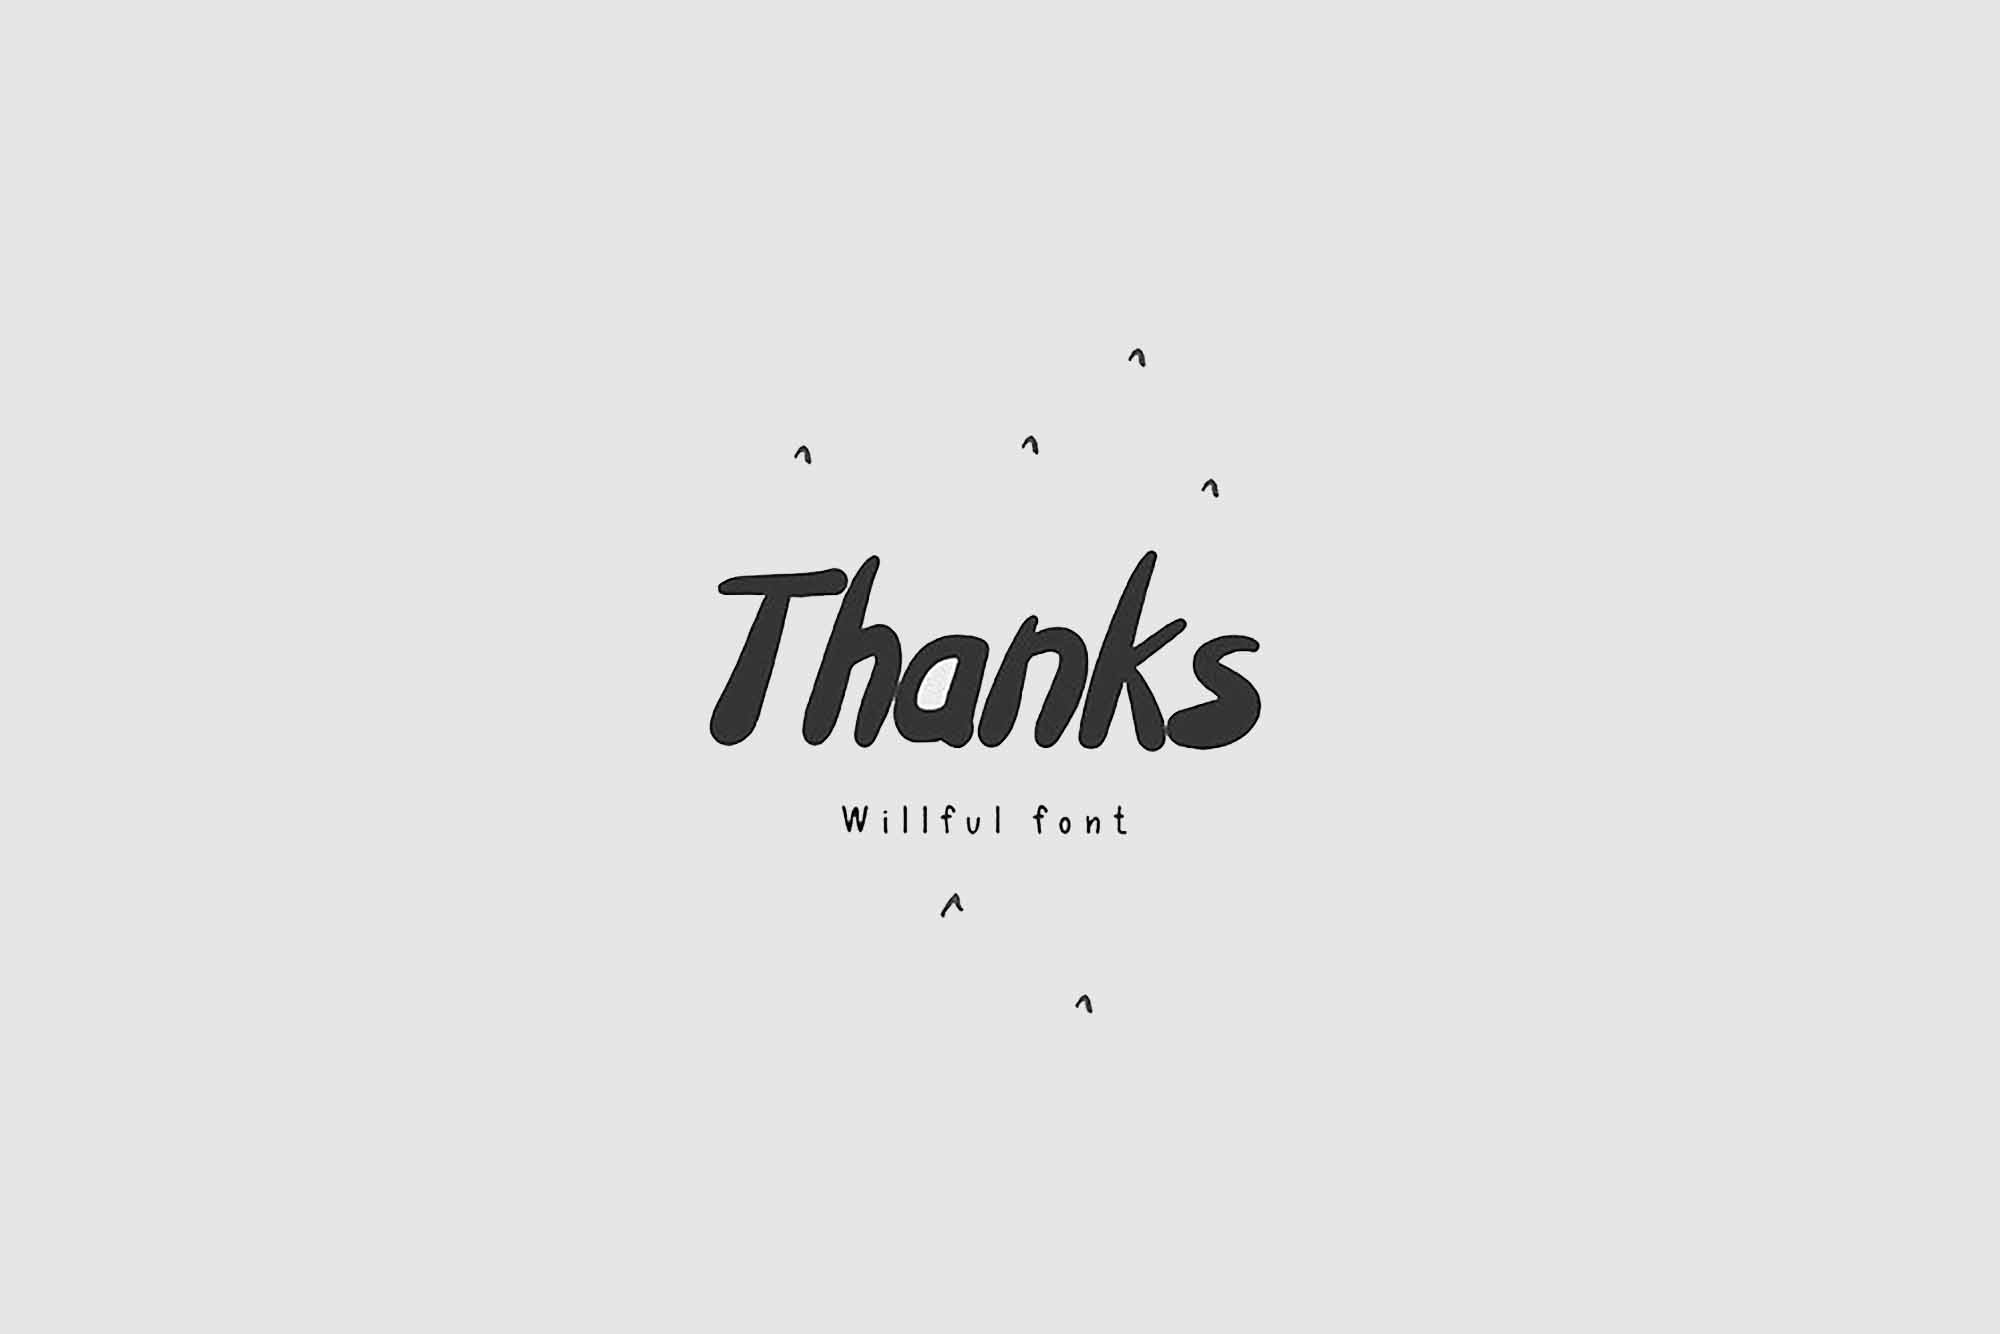 Willful Font 6